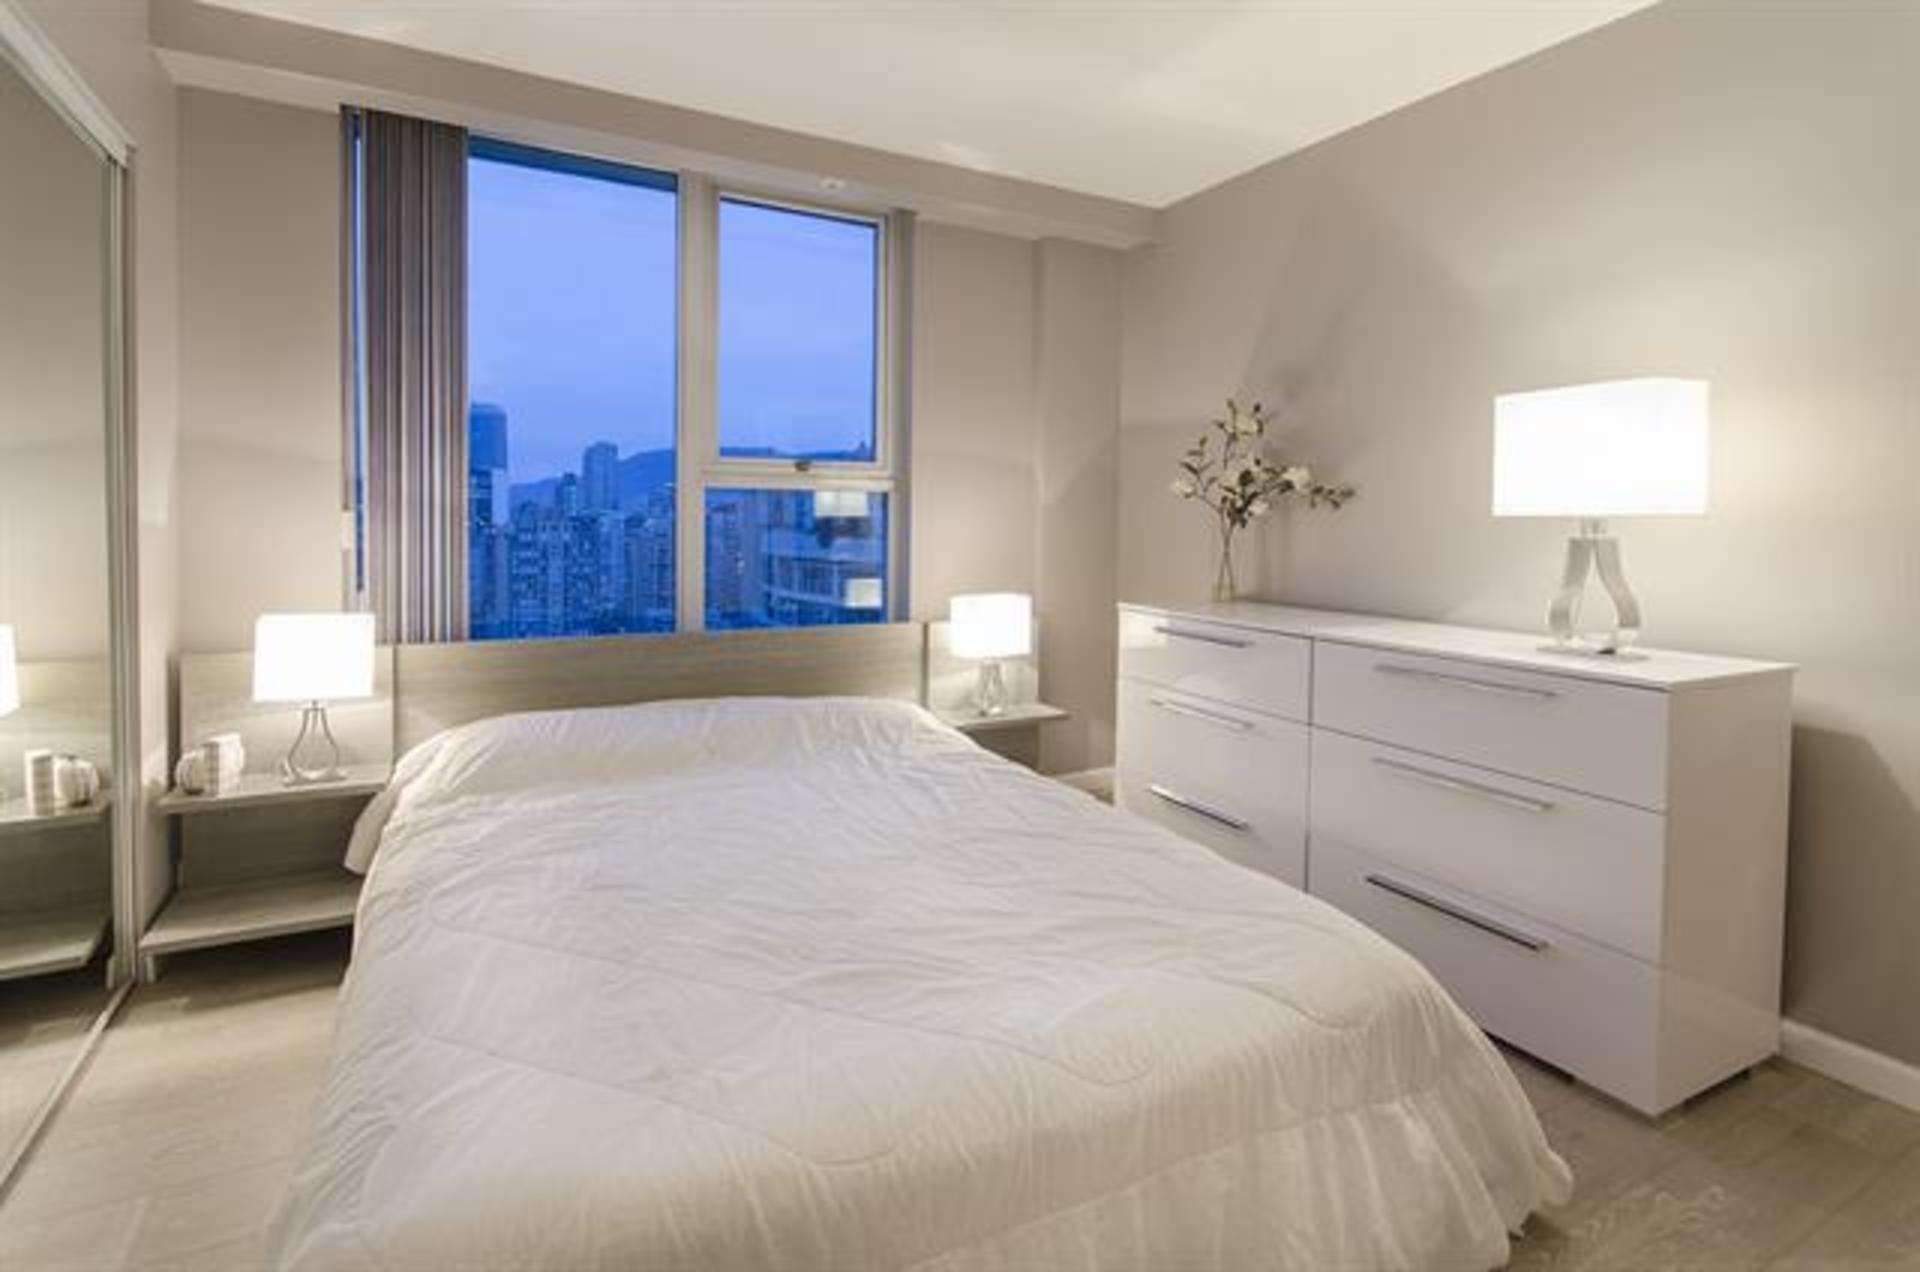 262076089-4 at 3603 - 1009 Expo Boulevard, Yaletown, Vancouver West